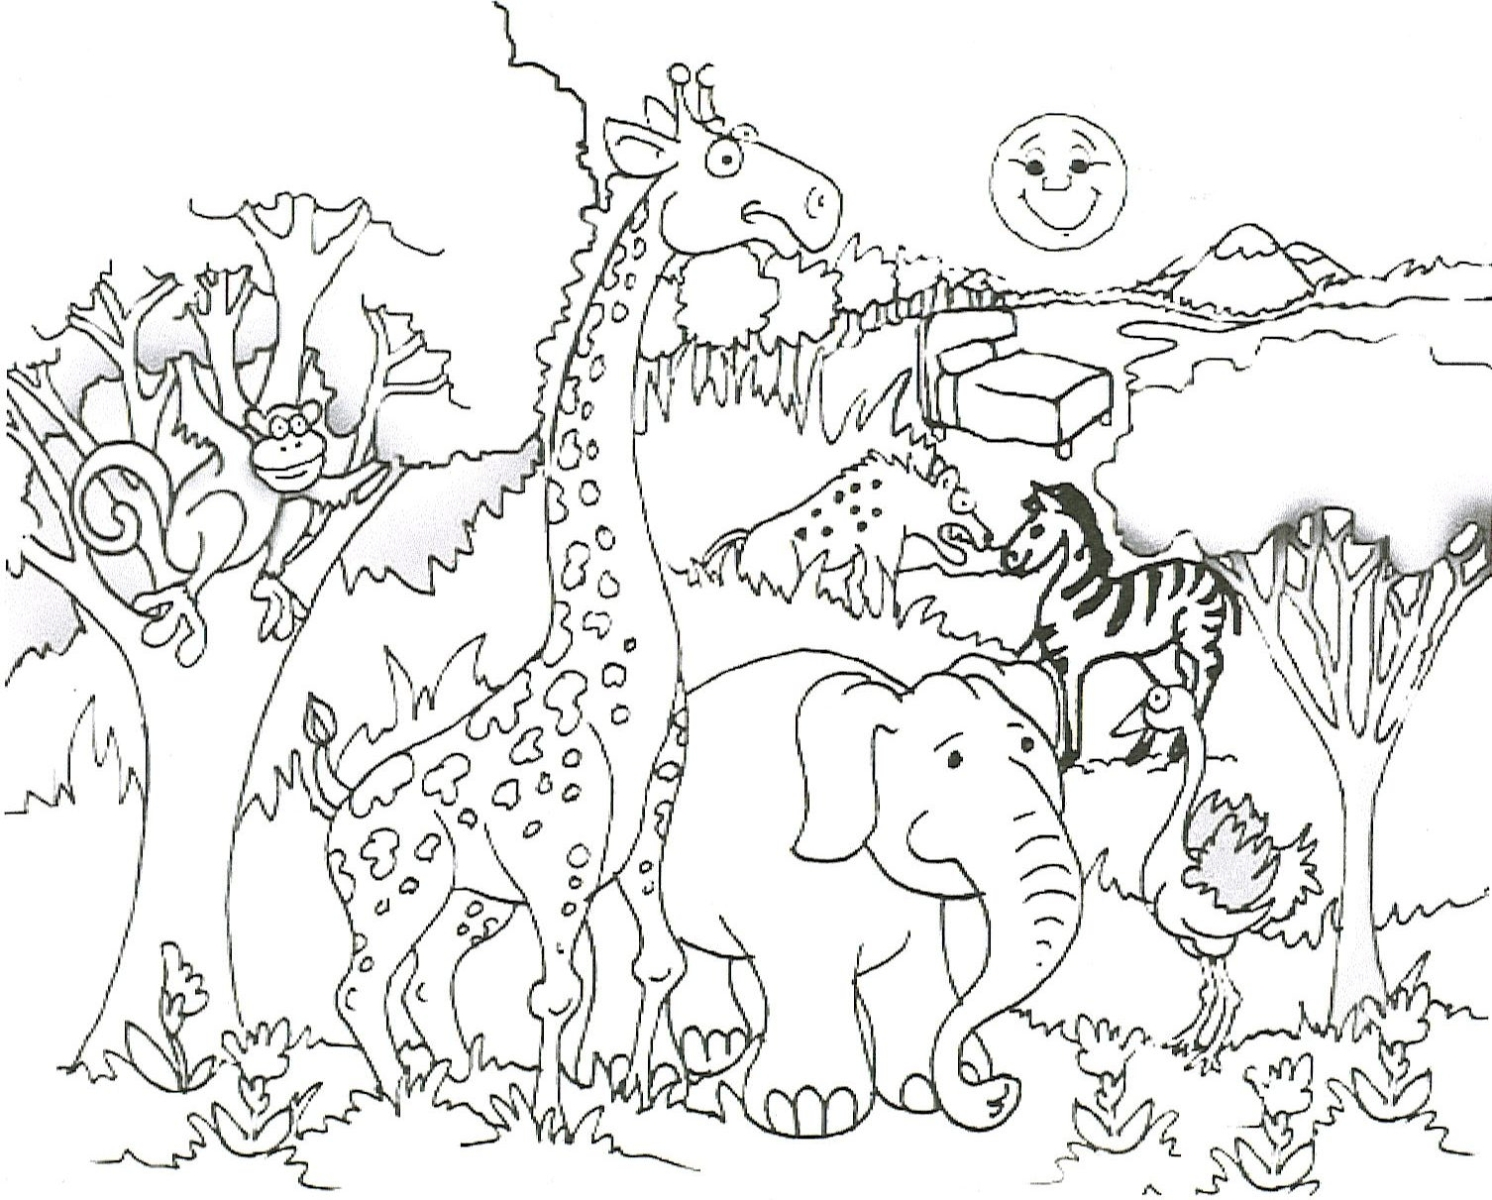 1492x1200 African Animals. 1492x1200 African Animals. 1060x820 African Animals  Coloring Pages